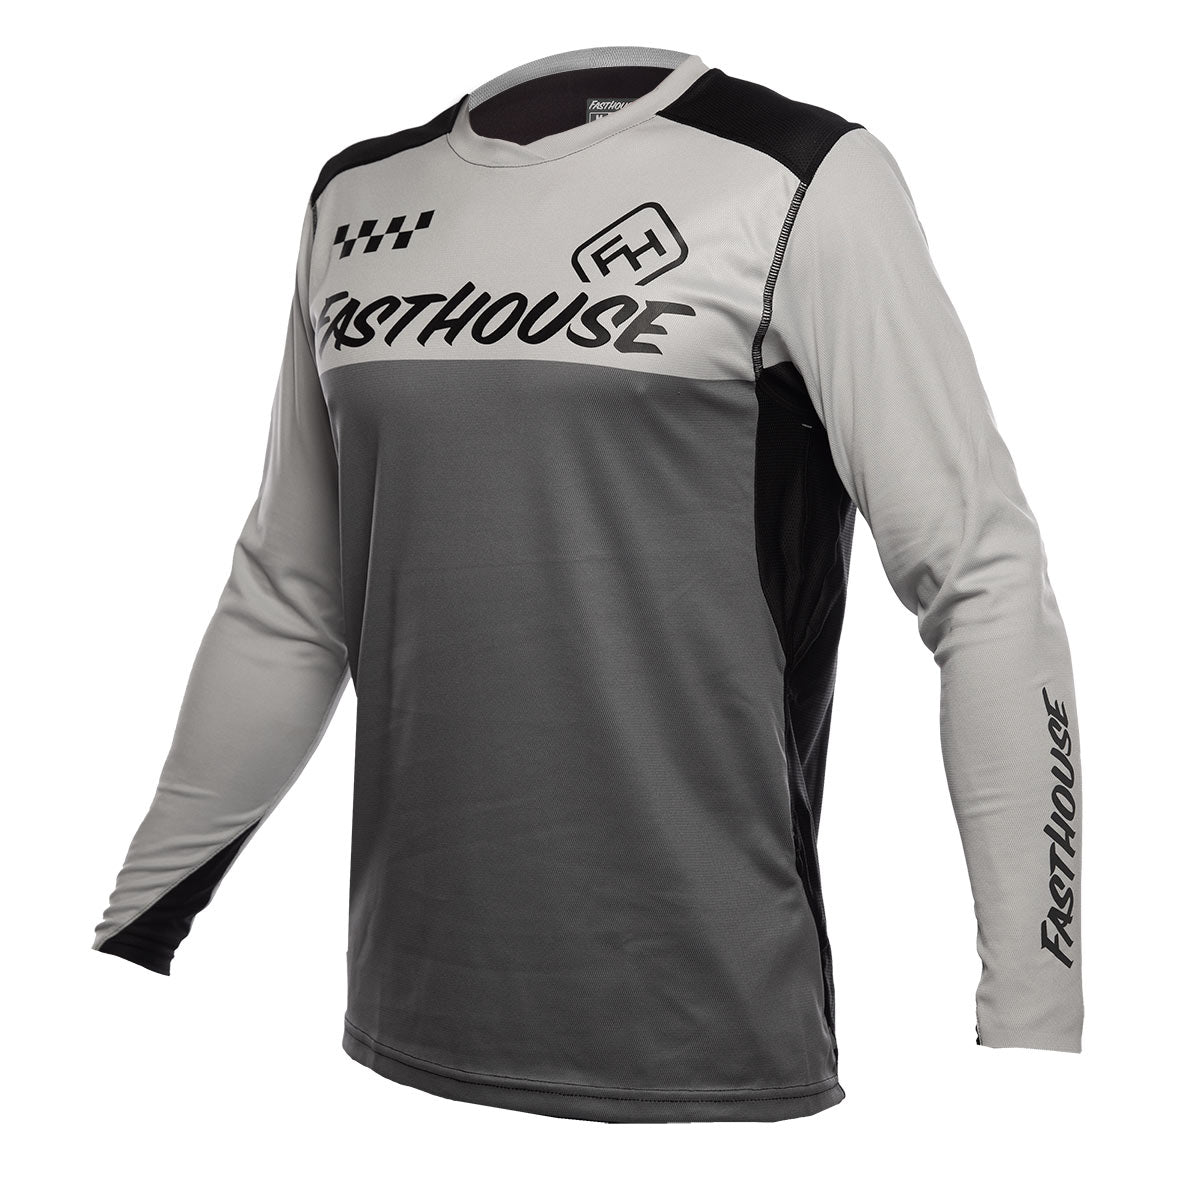 Alloy Block LS Jersey - Silver/Charcoal